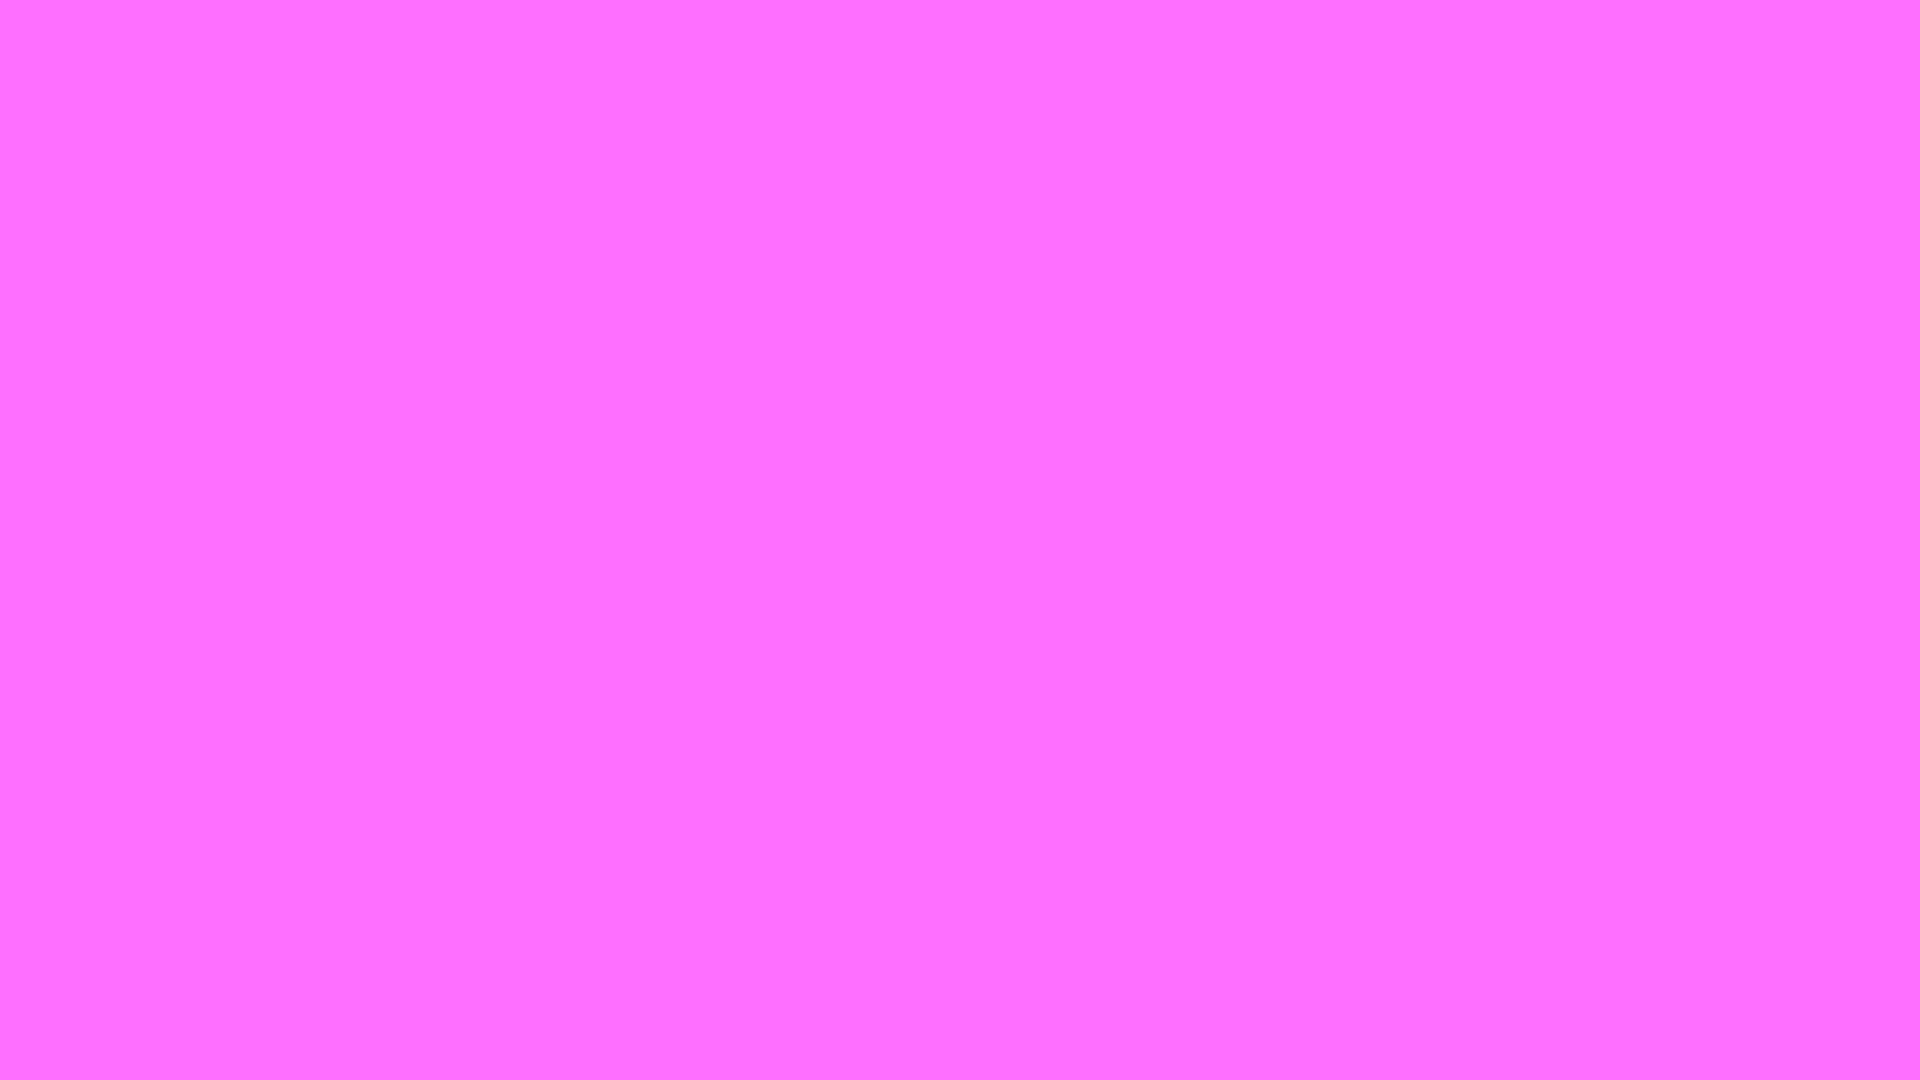 1920x1080 Shocking Pink Crayola Solid Color Background